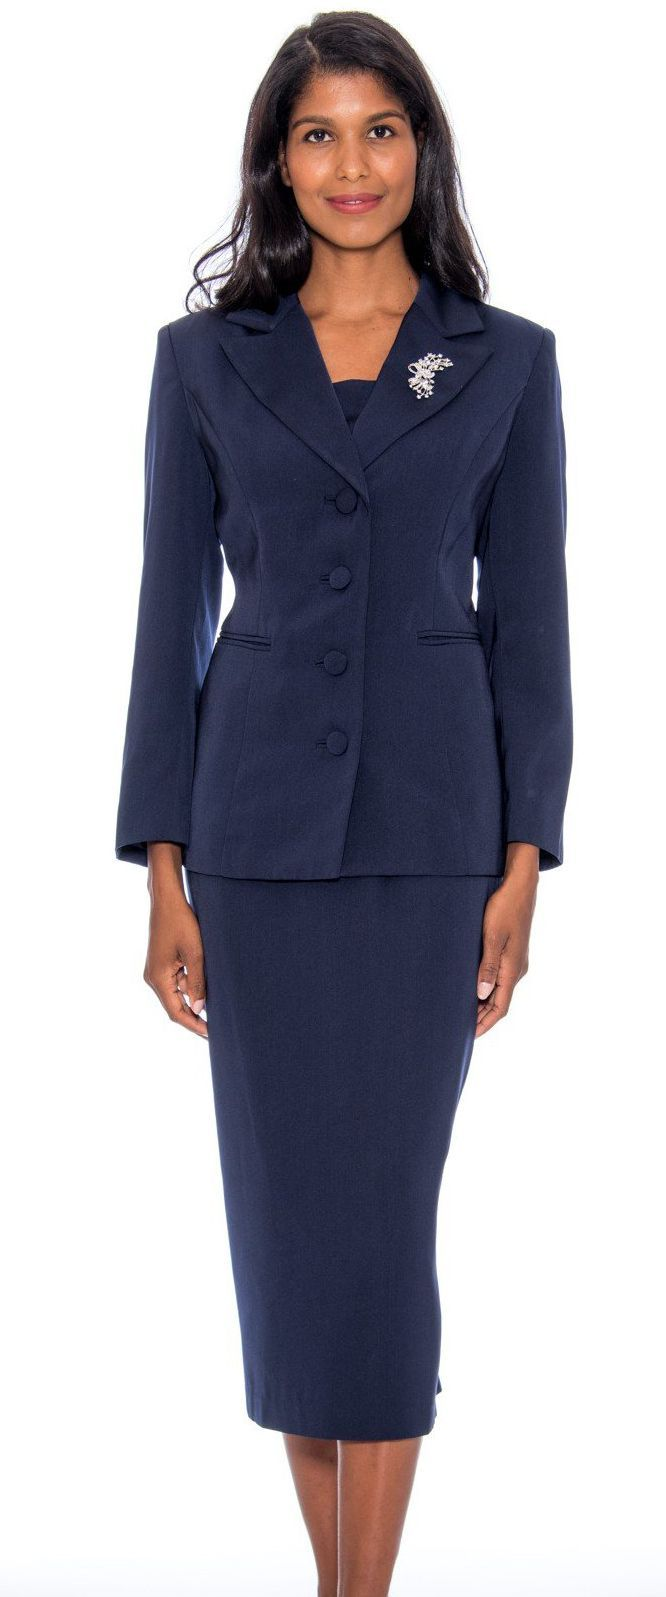 GMI Usher Suit 13382C-Navy - Church Suits For Less